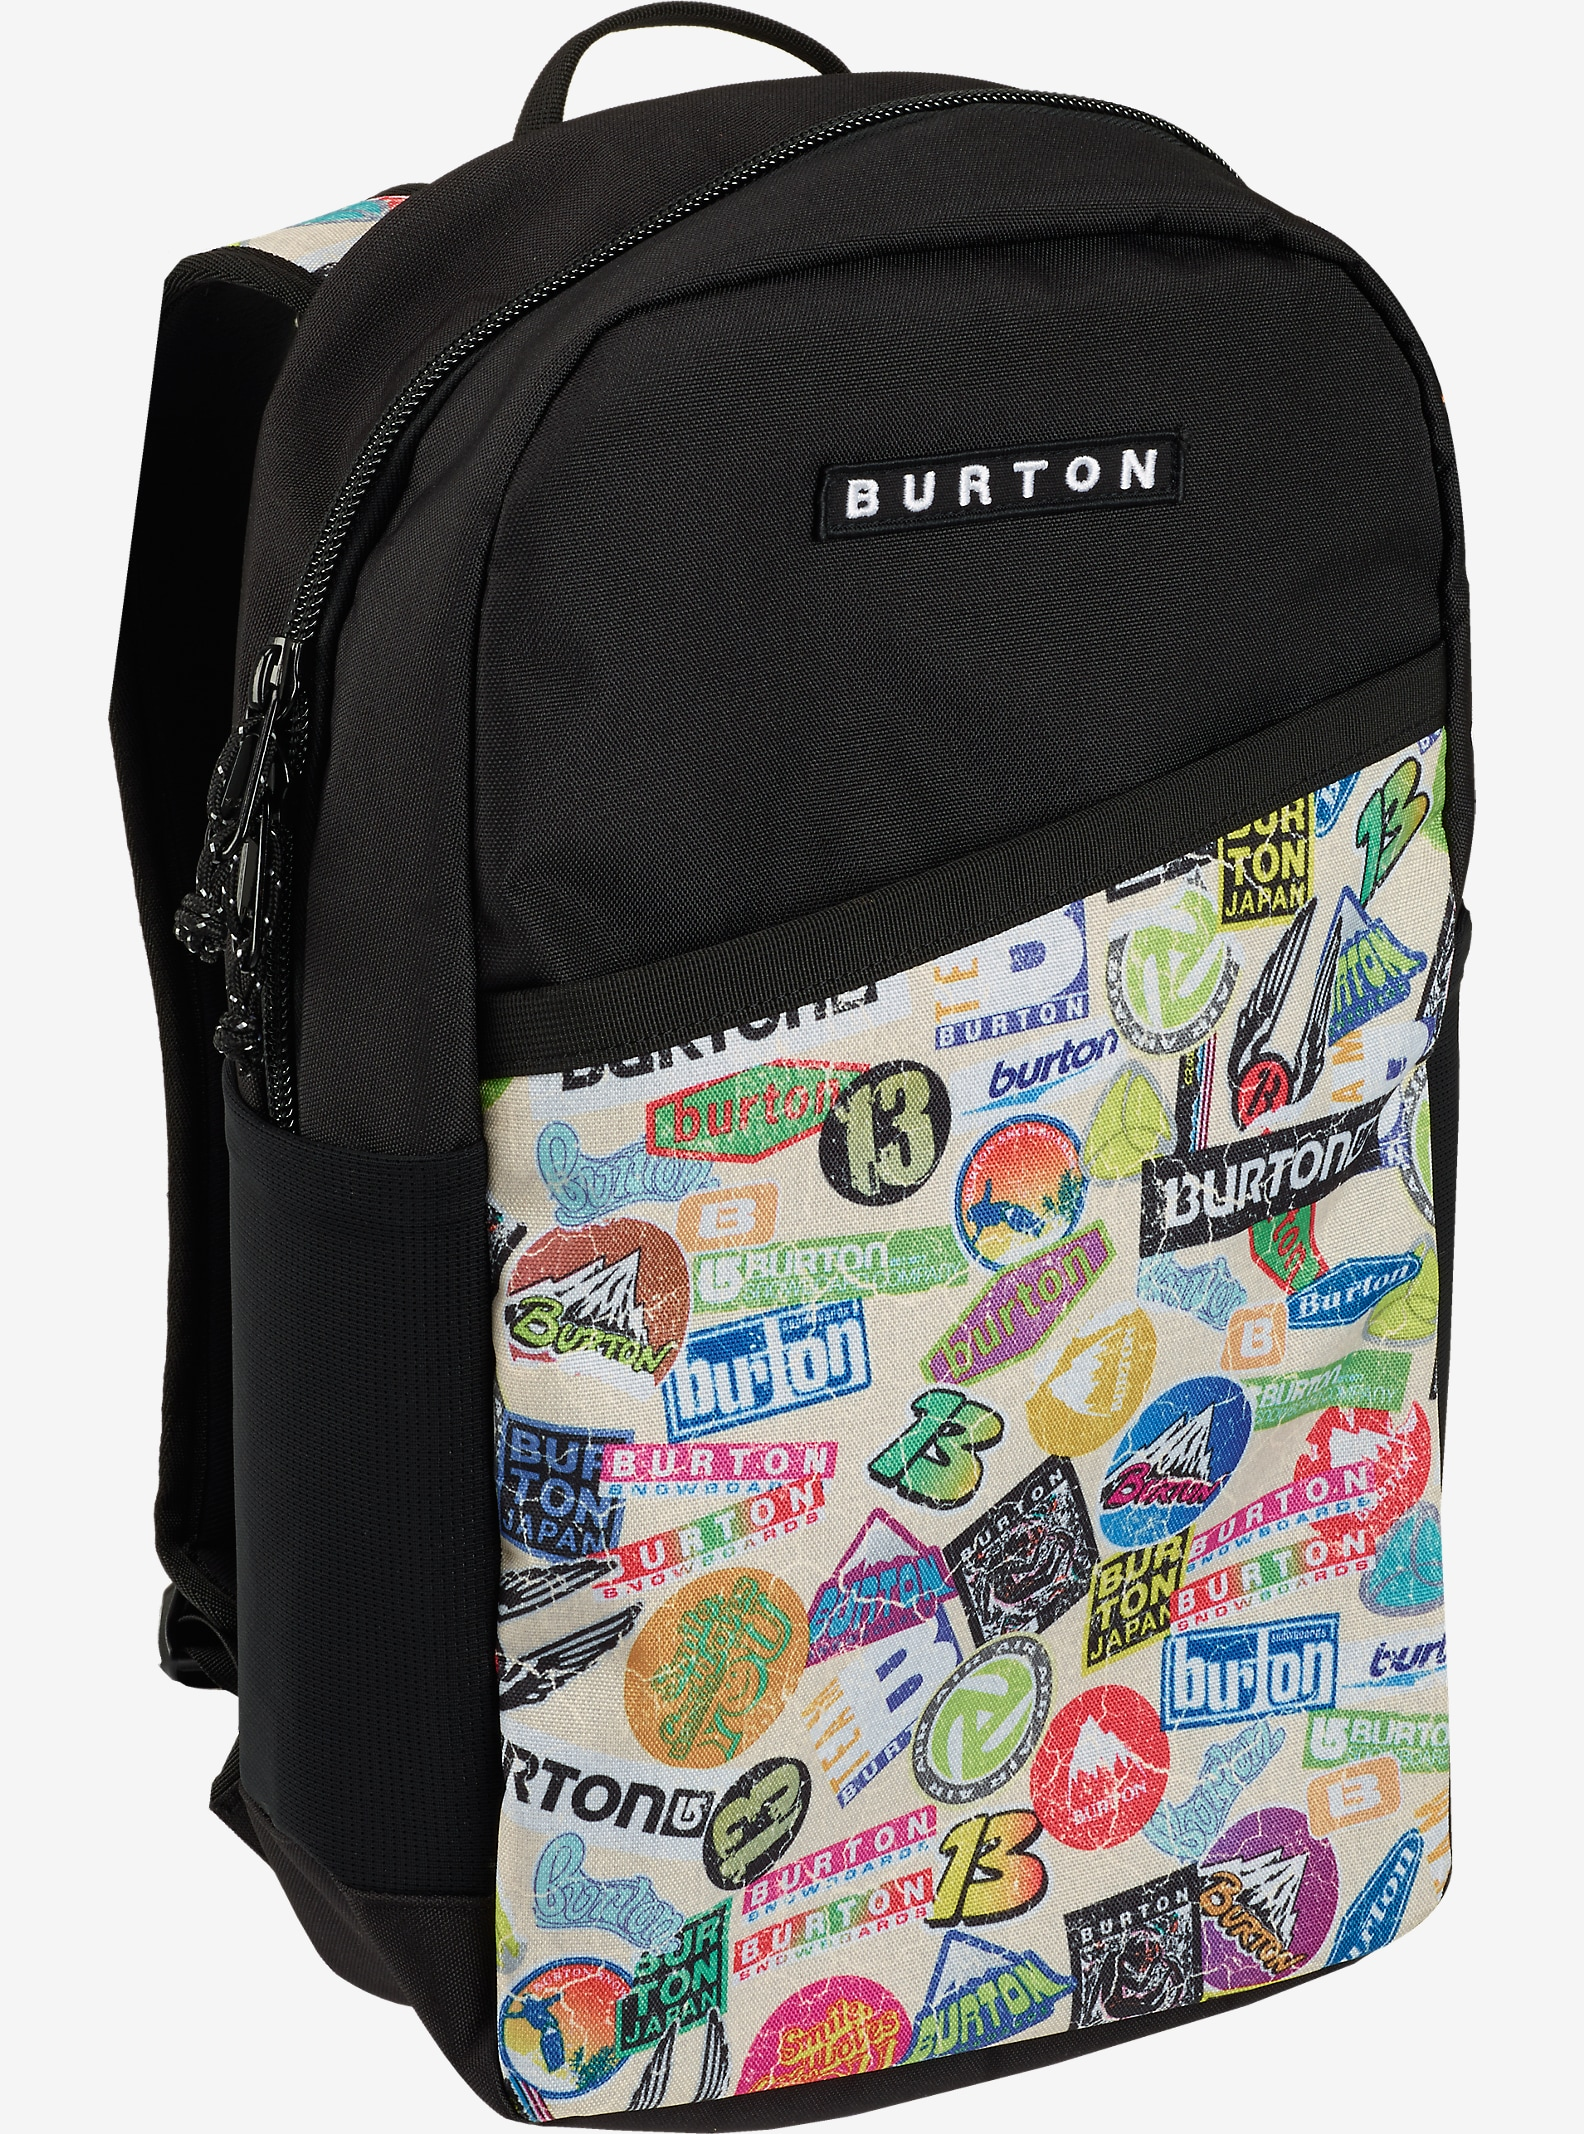 Burton Apollo Backpack shown in Sticker Print